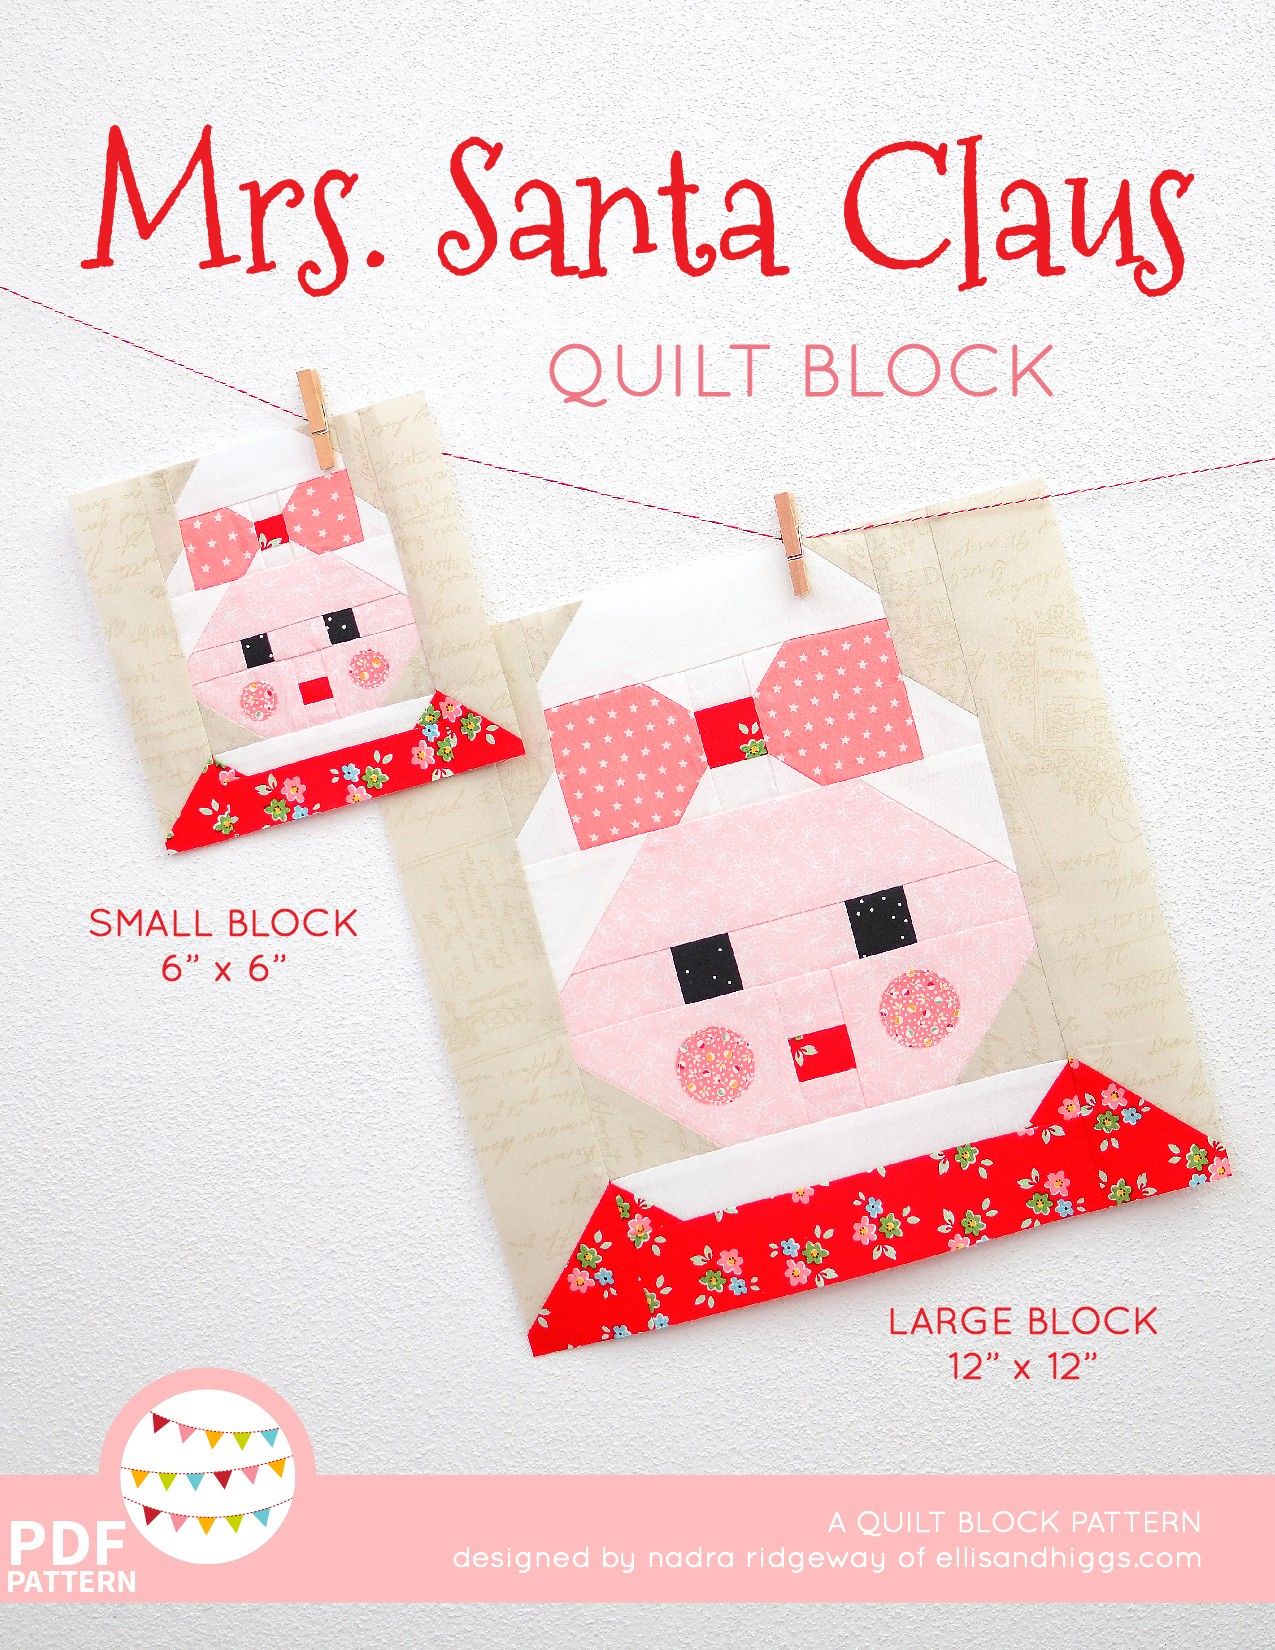 Mrs. Santa Claus Christmas quilt pattern